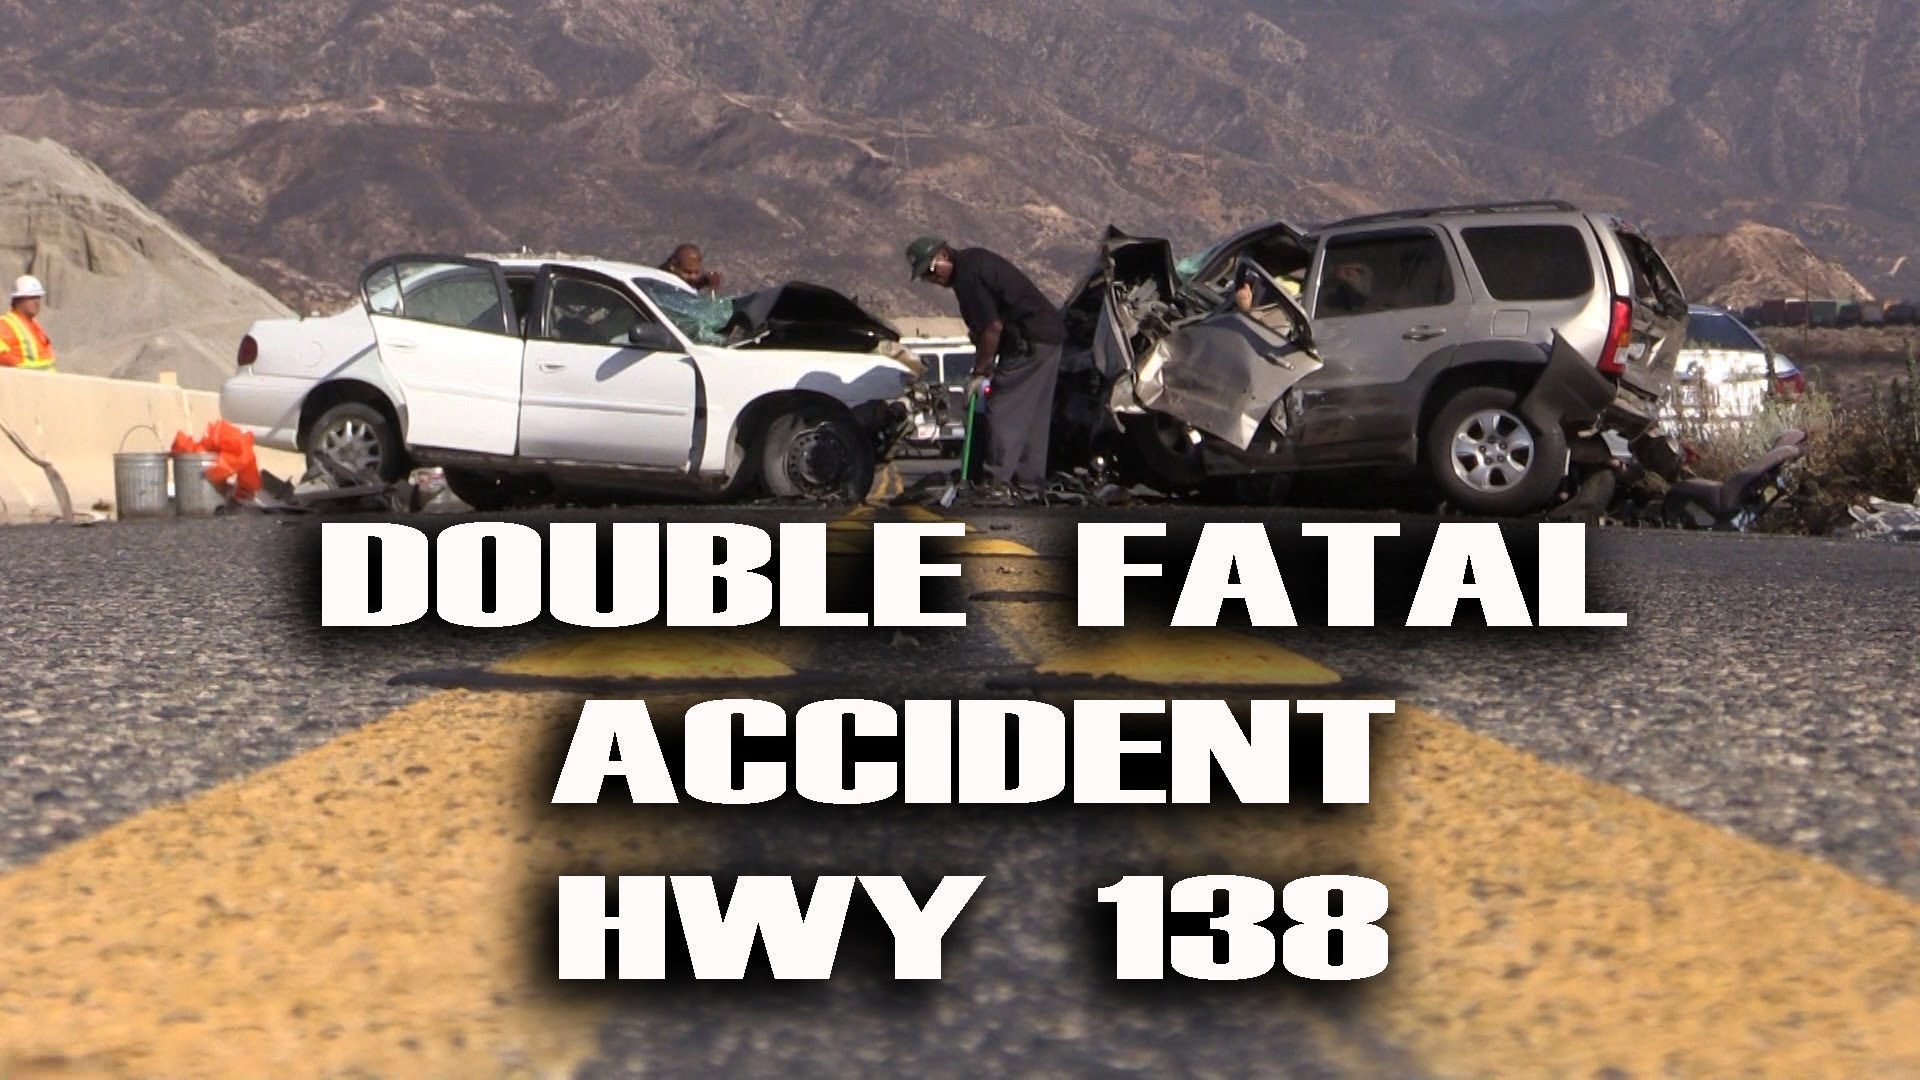 Double Fatal Accident HWY 138 | Events | Vehicles